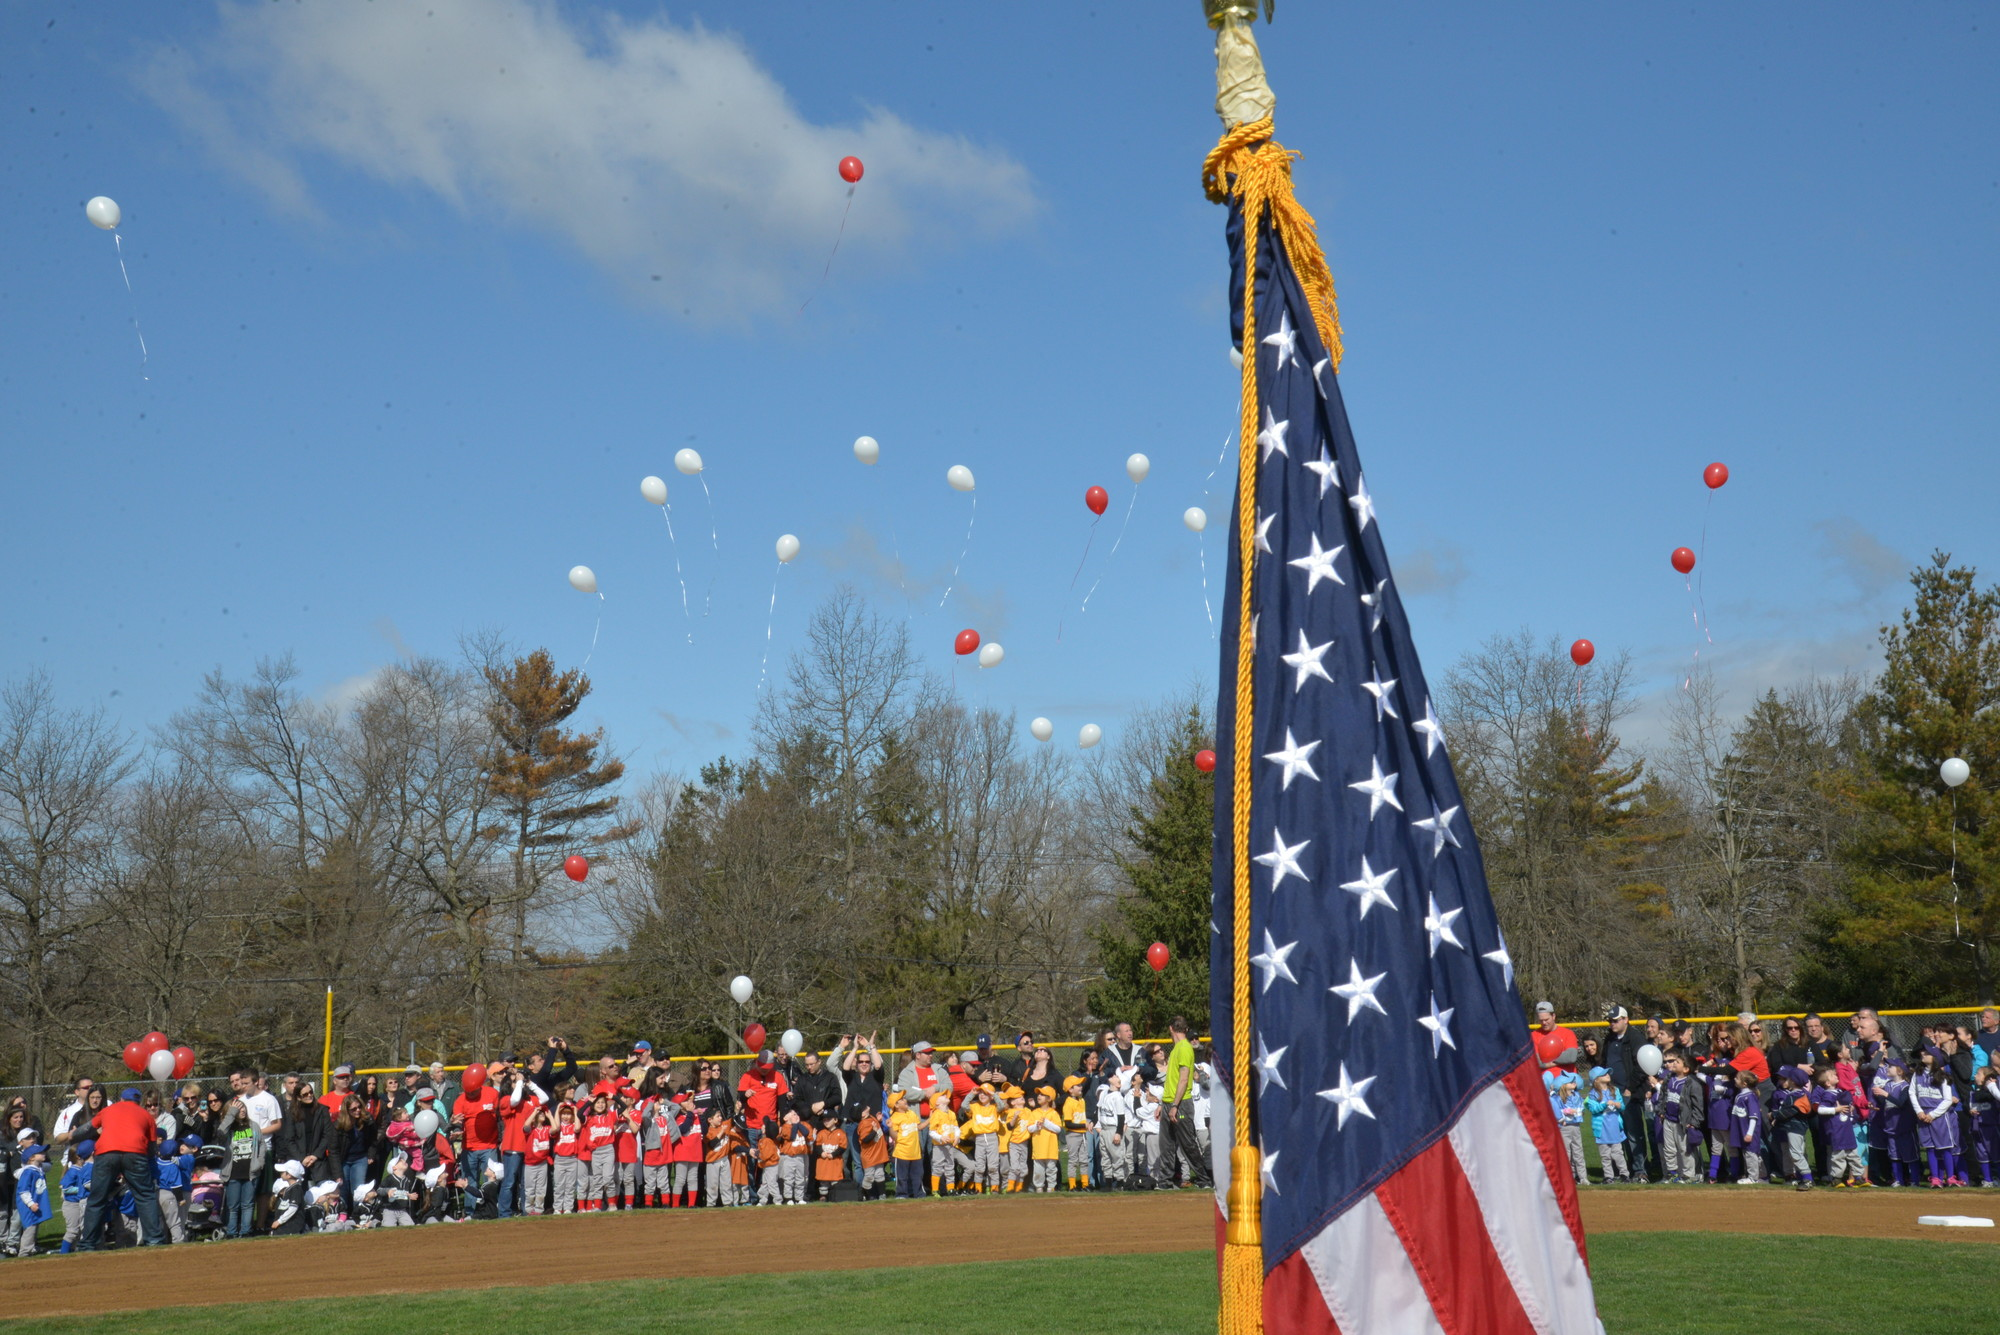 During its annual parade last Saturday, members of the Central Nassau Little League Association released balloons to commemorate Harlie Treanor, a former Little Leaguer who died last July. Story, more photos, page 3.